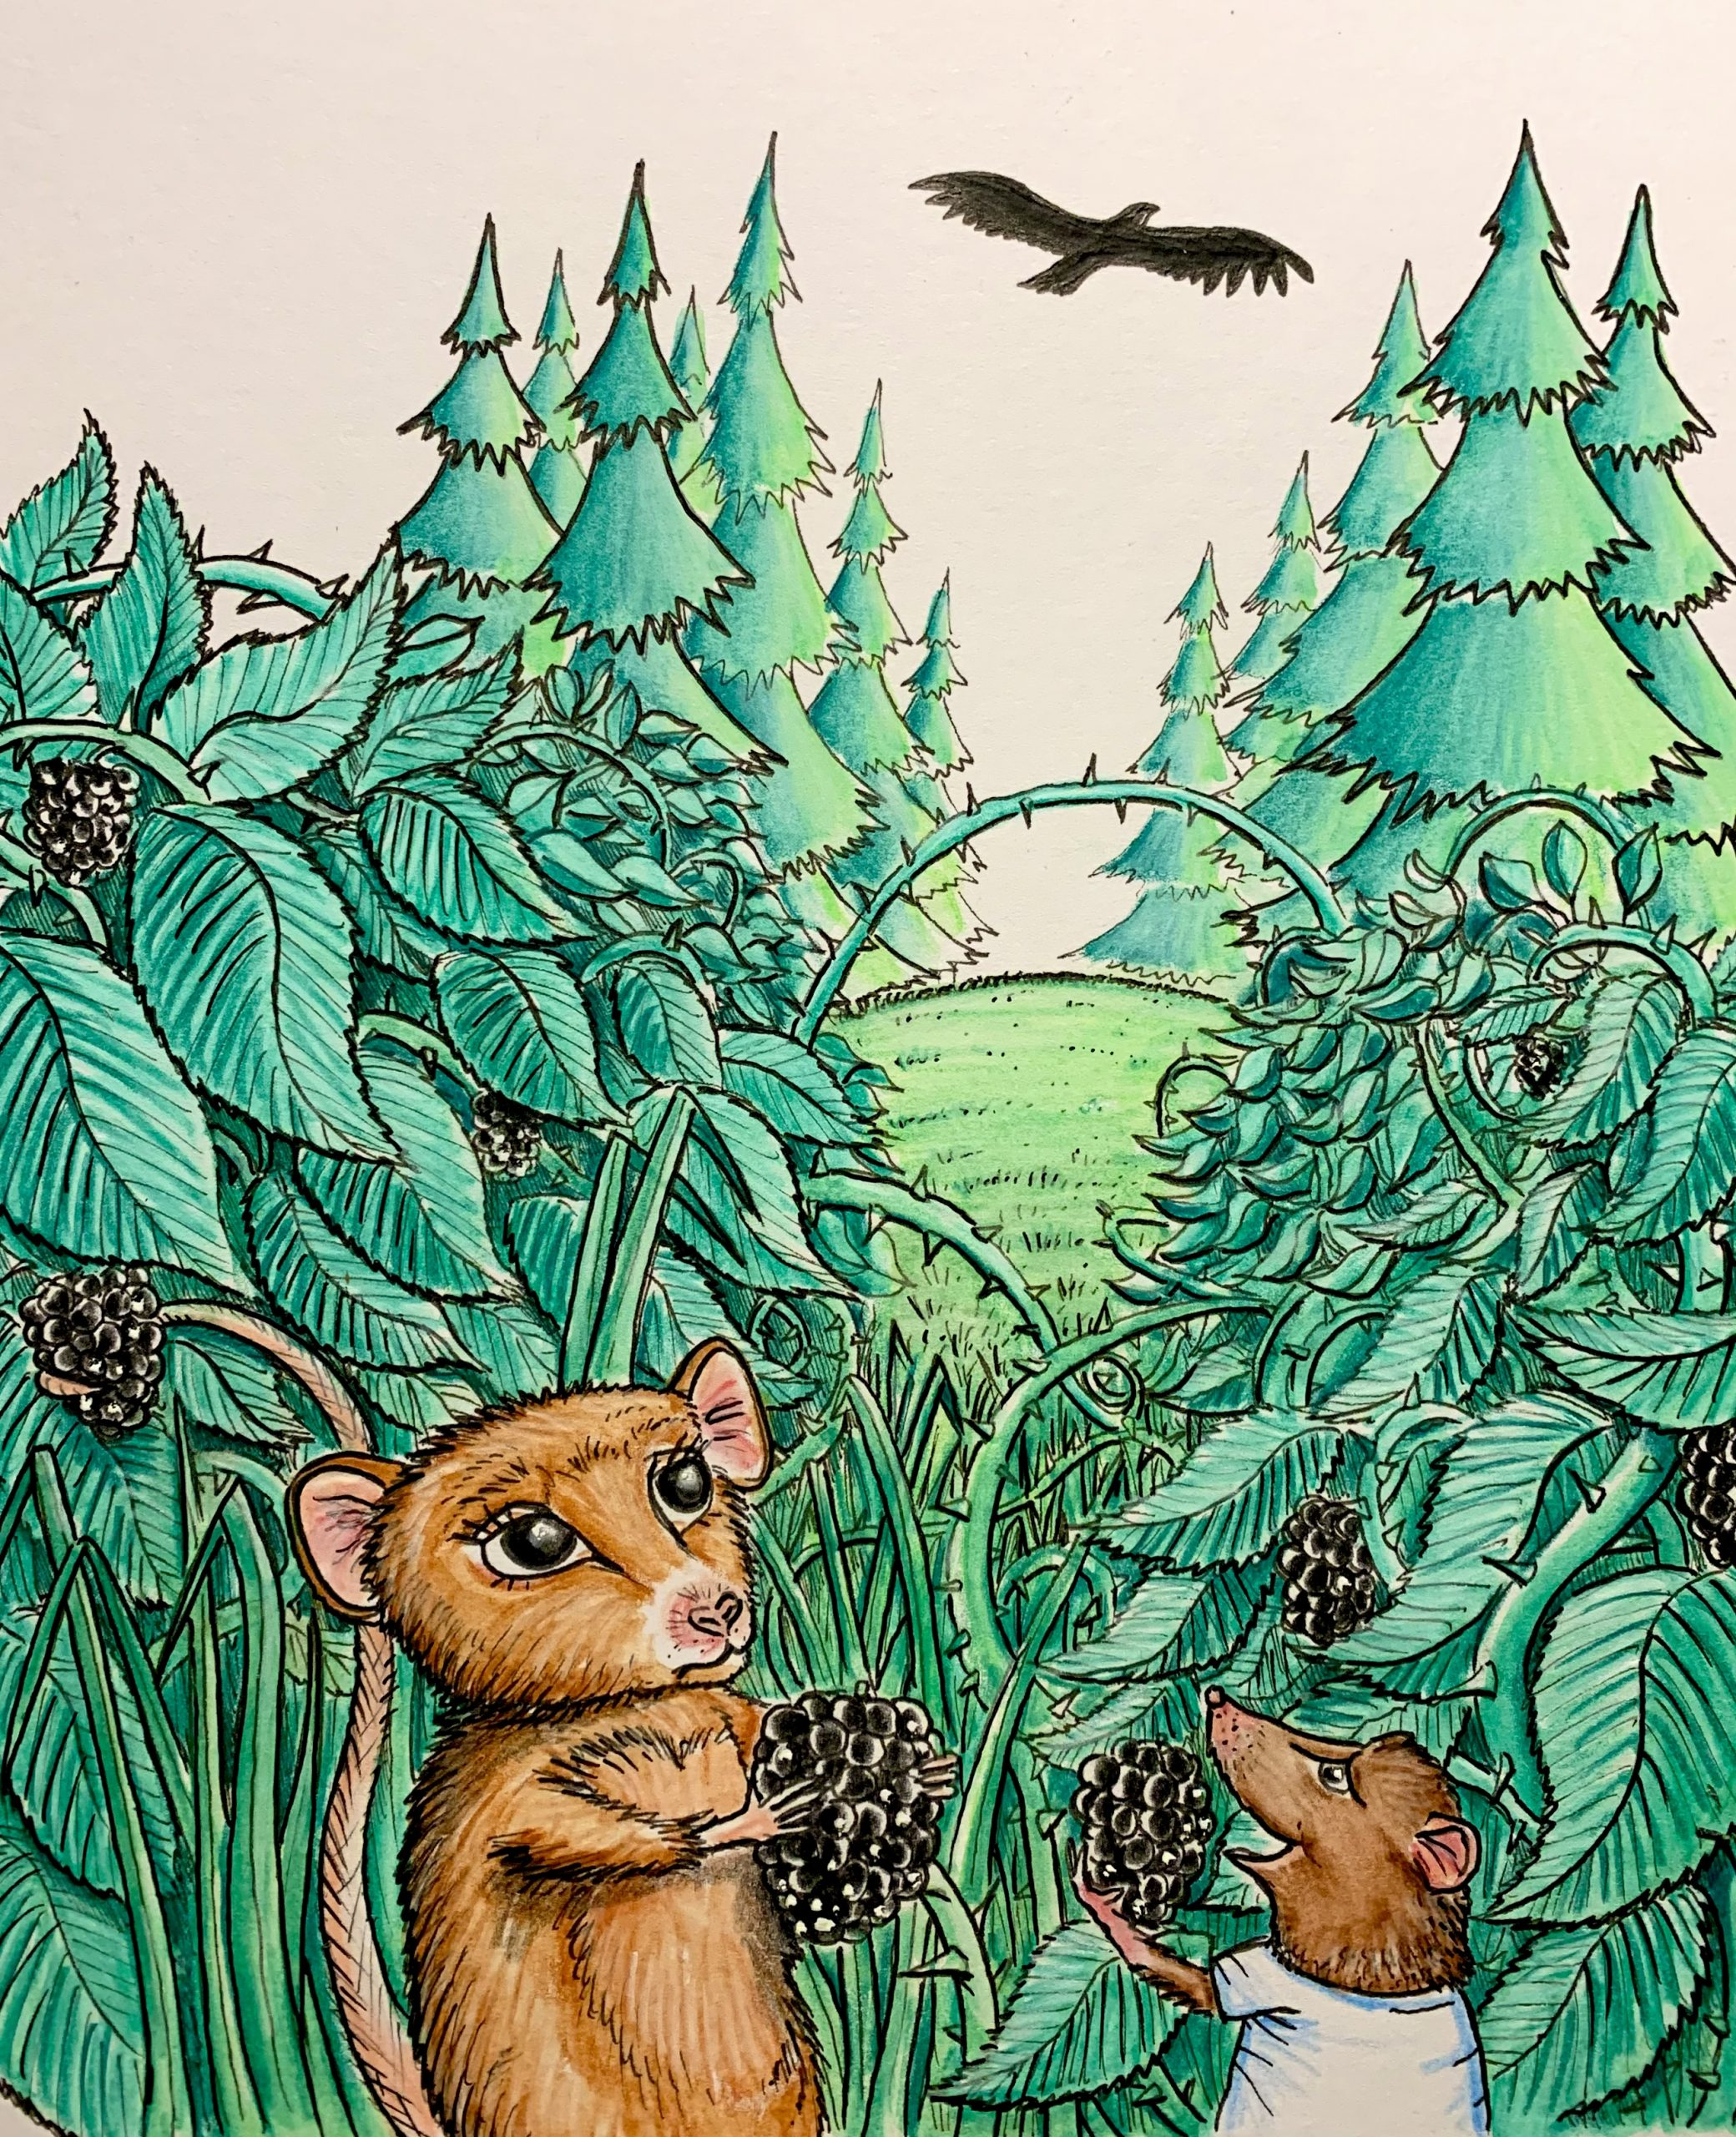 Dormice eating blackberries and hawk circling above